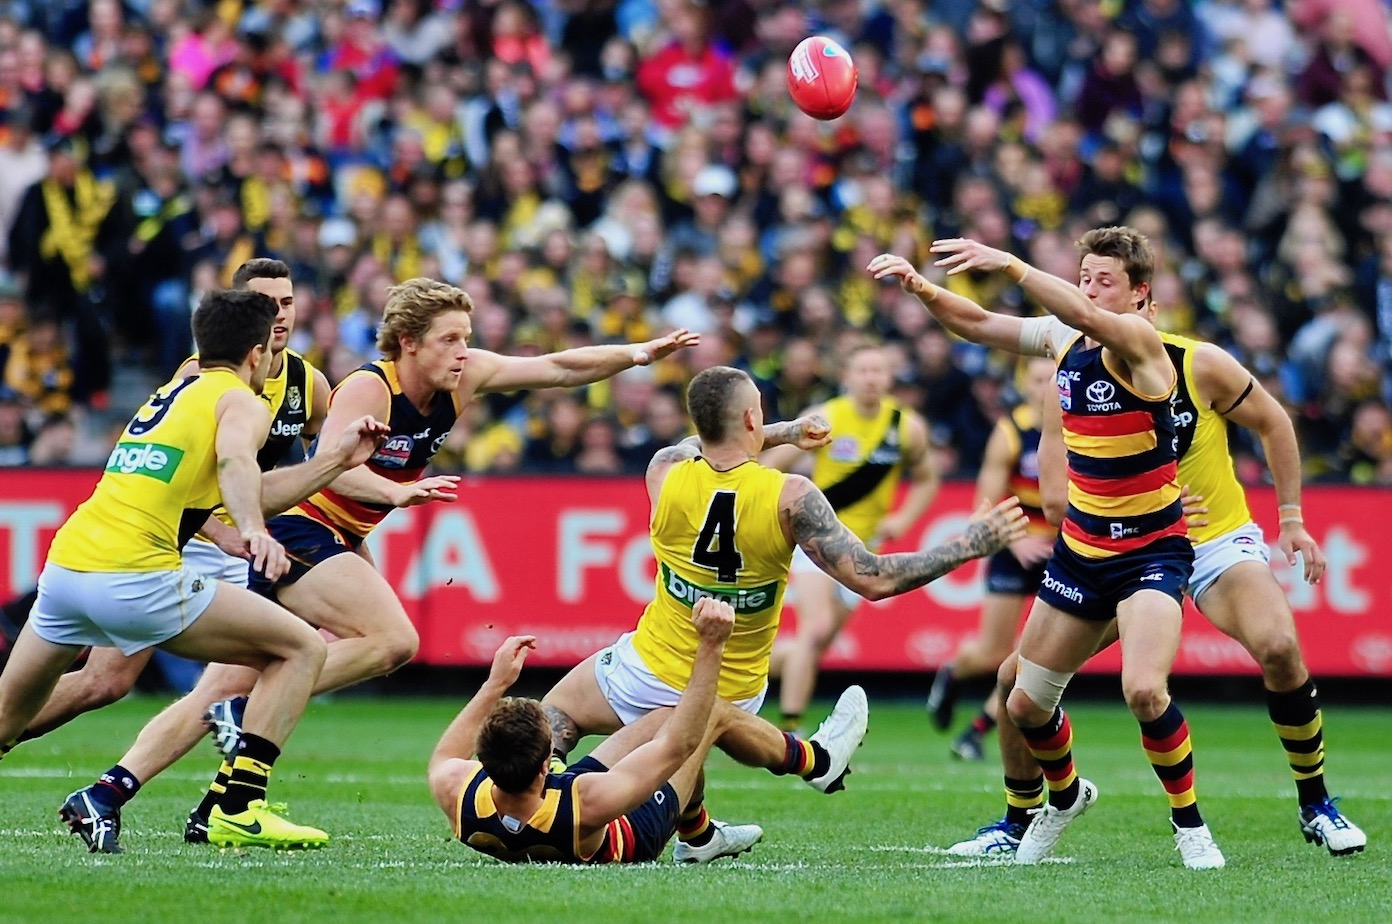 Brad Crouch tackles Dusty as brother Matt and Sloane reach for the sherrin. Photo by Kim Densham for AFANA.